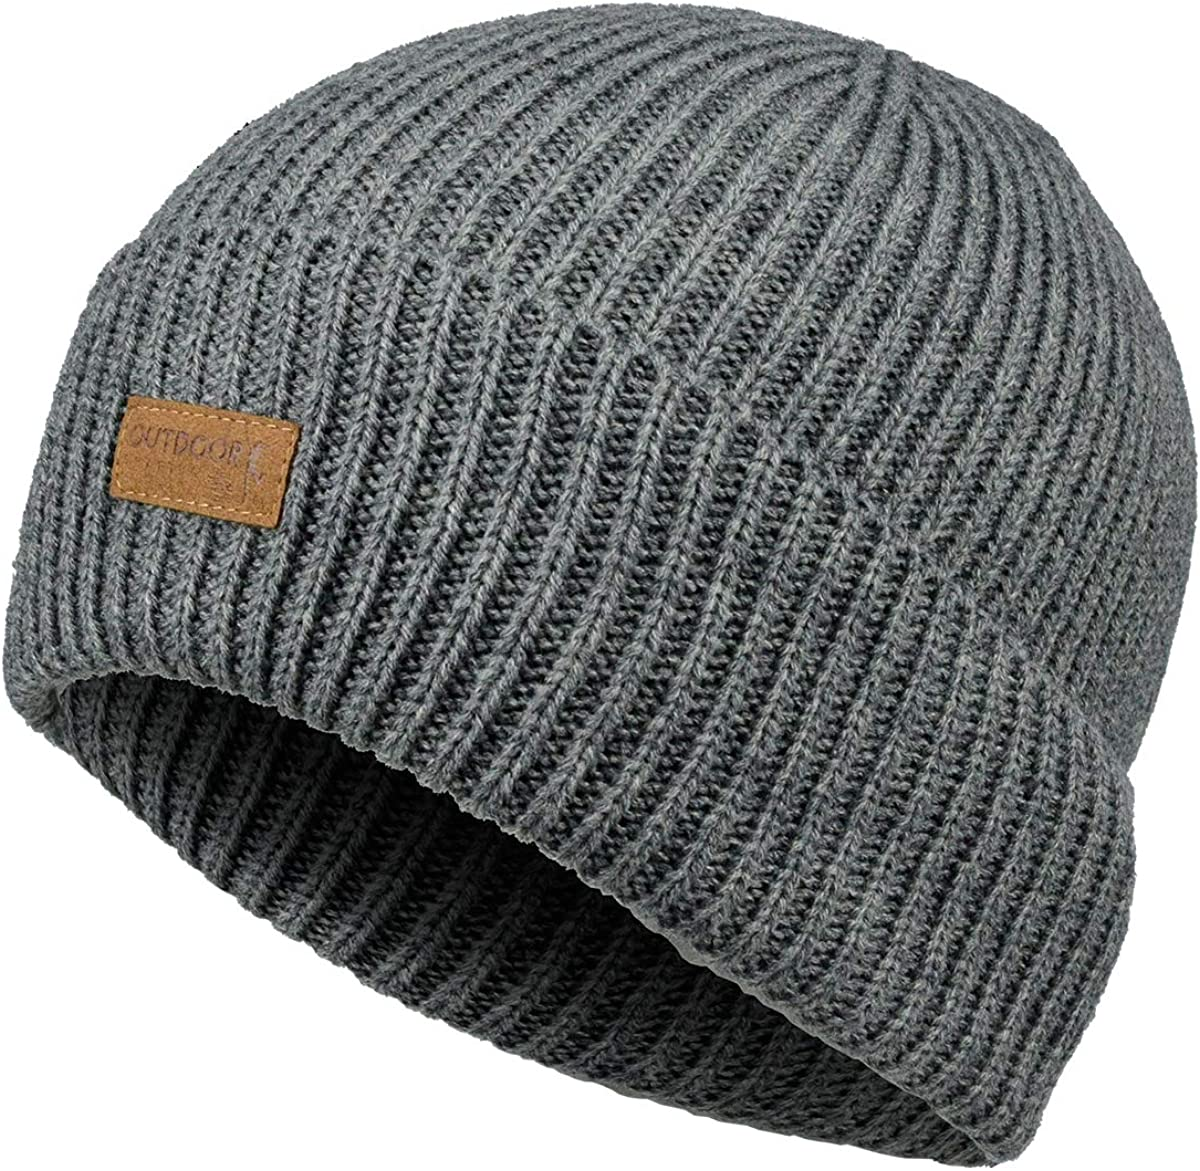 OUTDOOR SHAPING Winter Max 60% OFF Wool Beanie Knit Men Ribb for Women Hat sold out